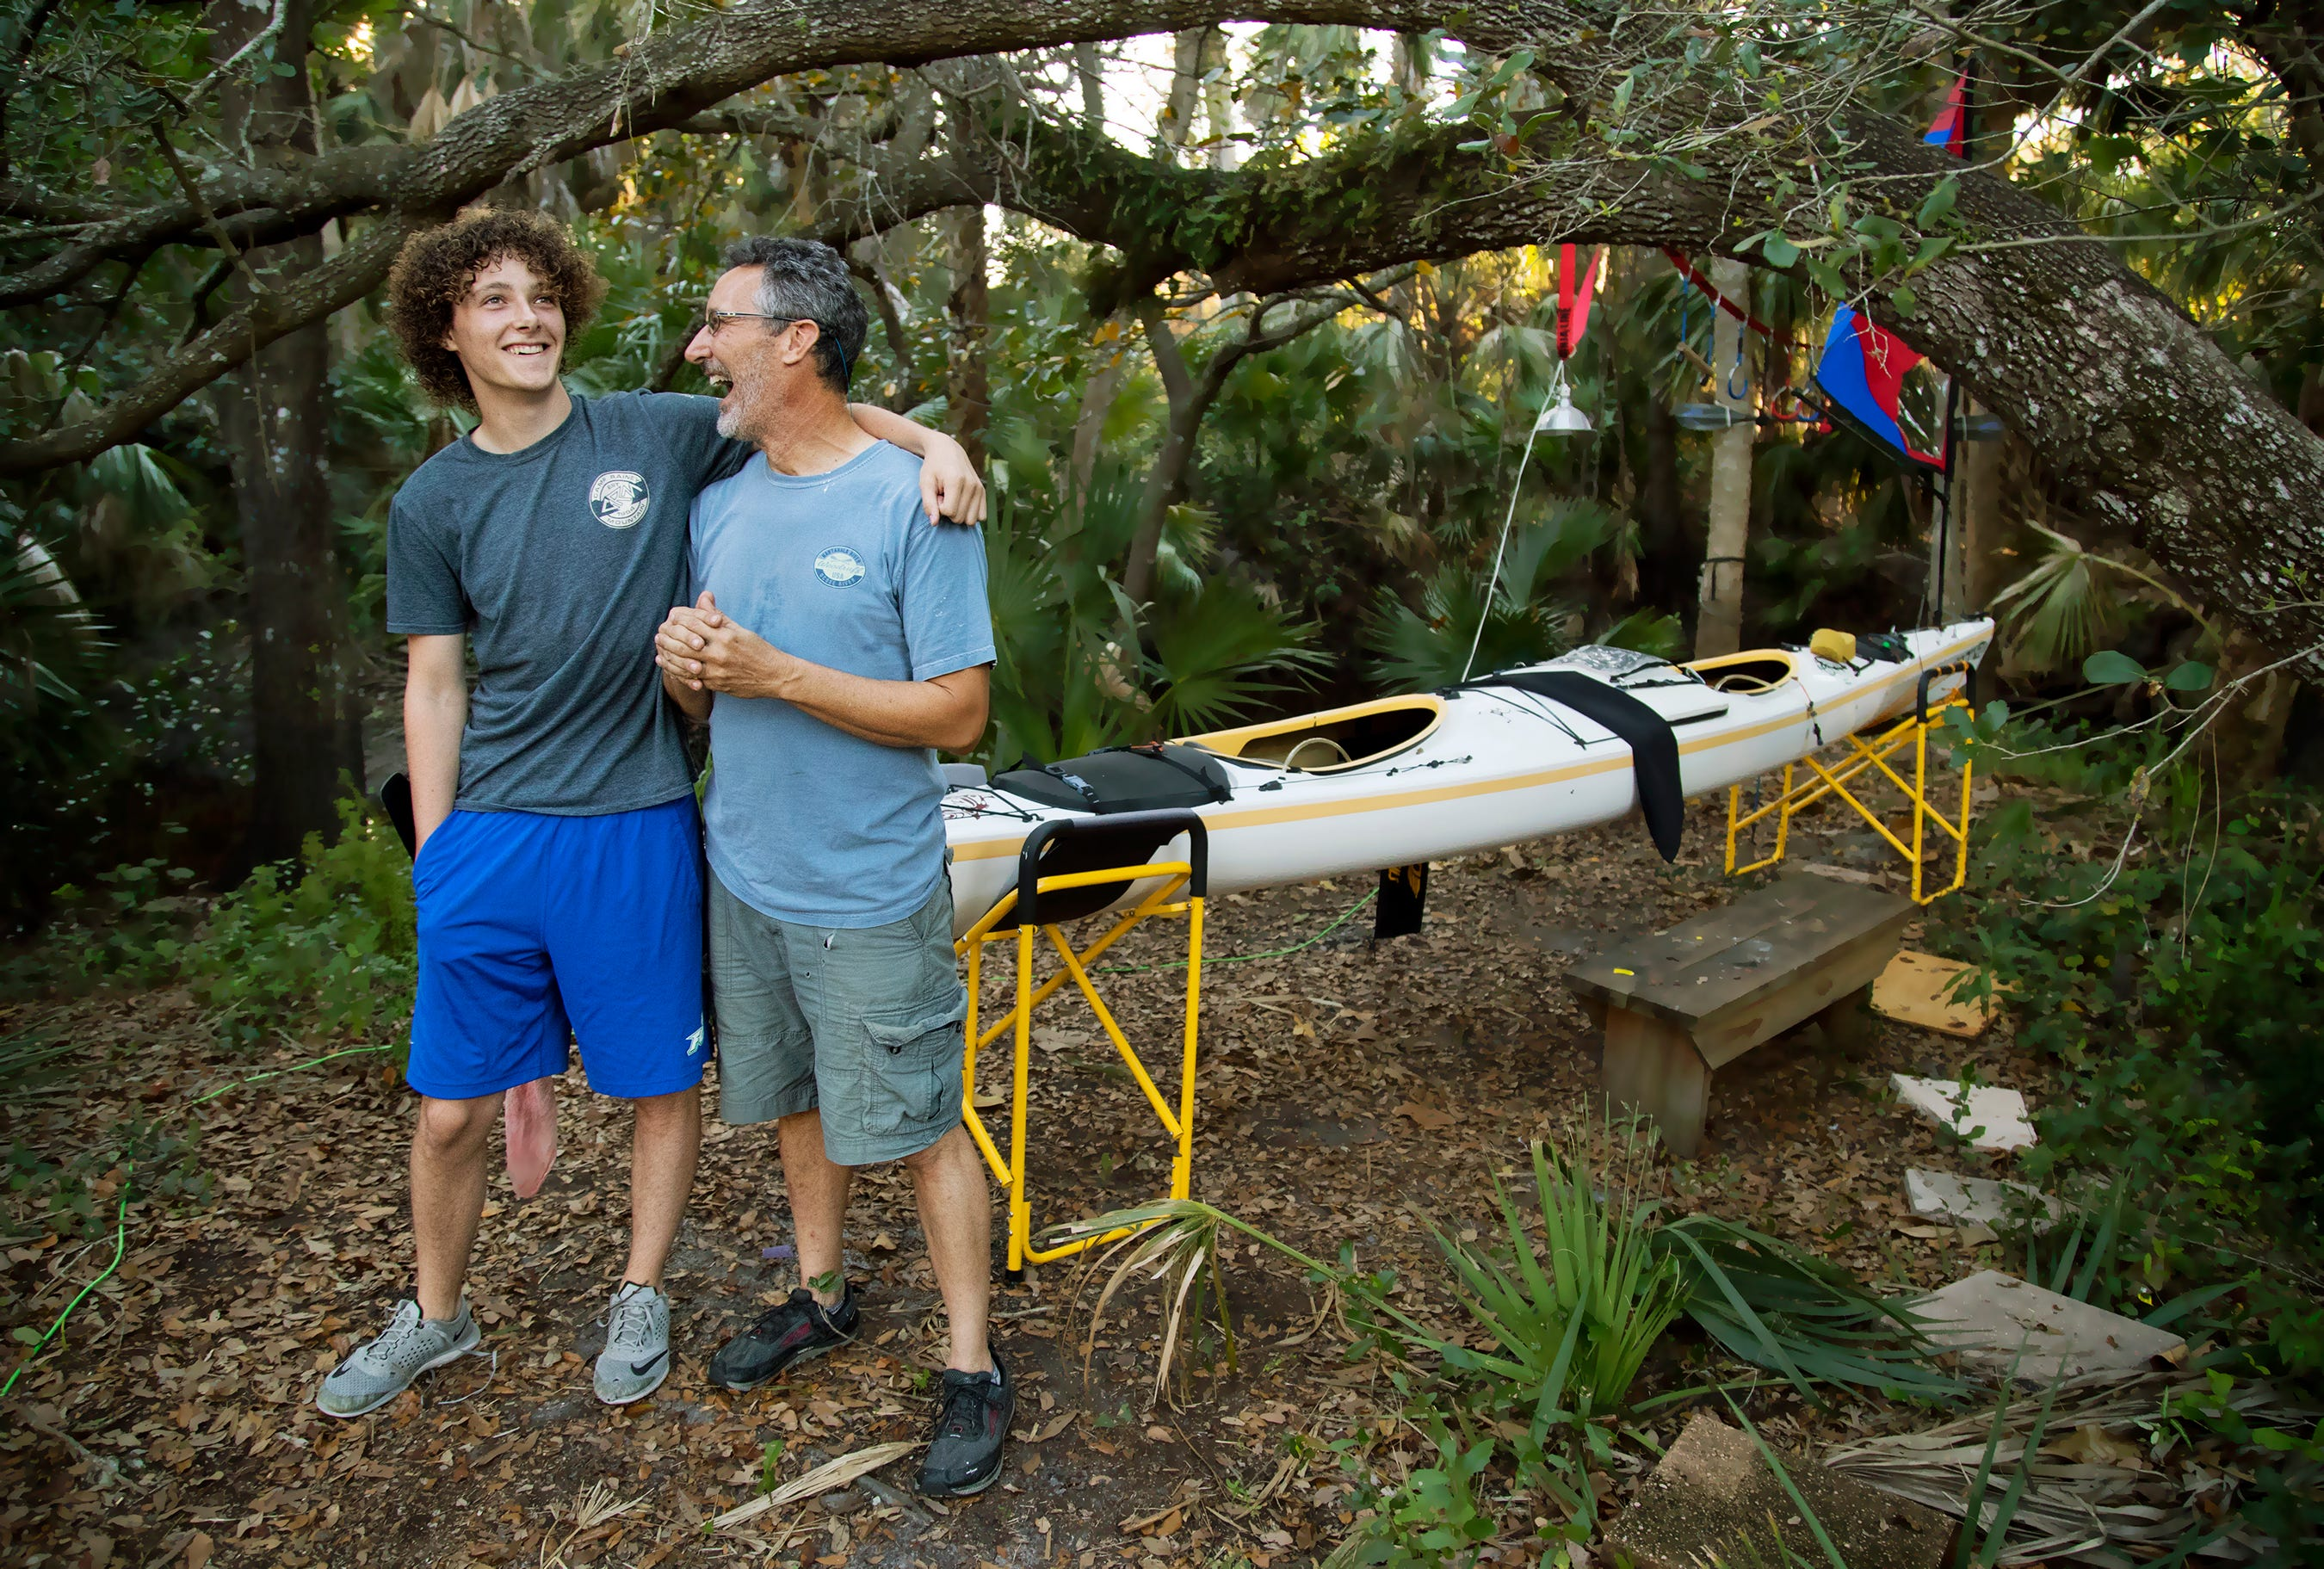 Maxfield Seixas, 19, and his father Mark Cecil at their Bonita Springs home on March 1. The following day they began a 300-mile kayak race but withdrew after learning that Maxfield's mother, Patricia Jean Sexias, died of cancer on March 3.